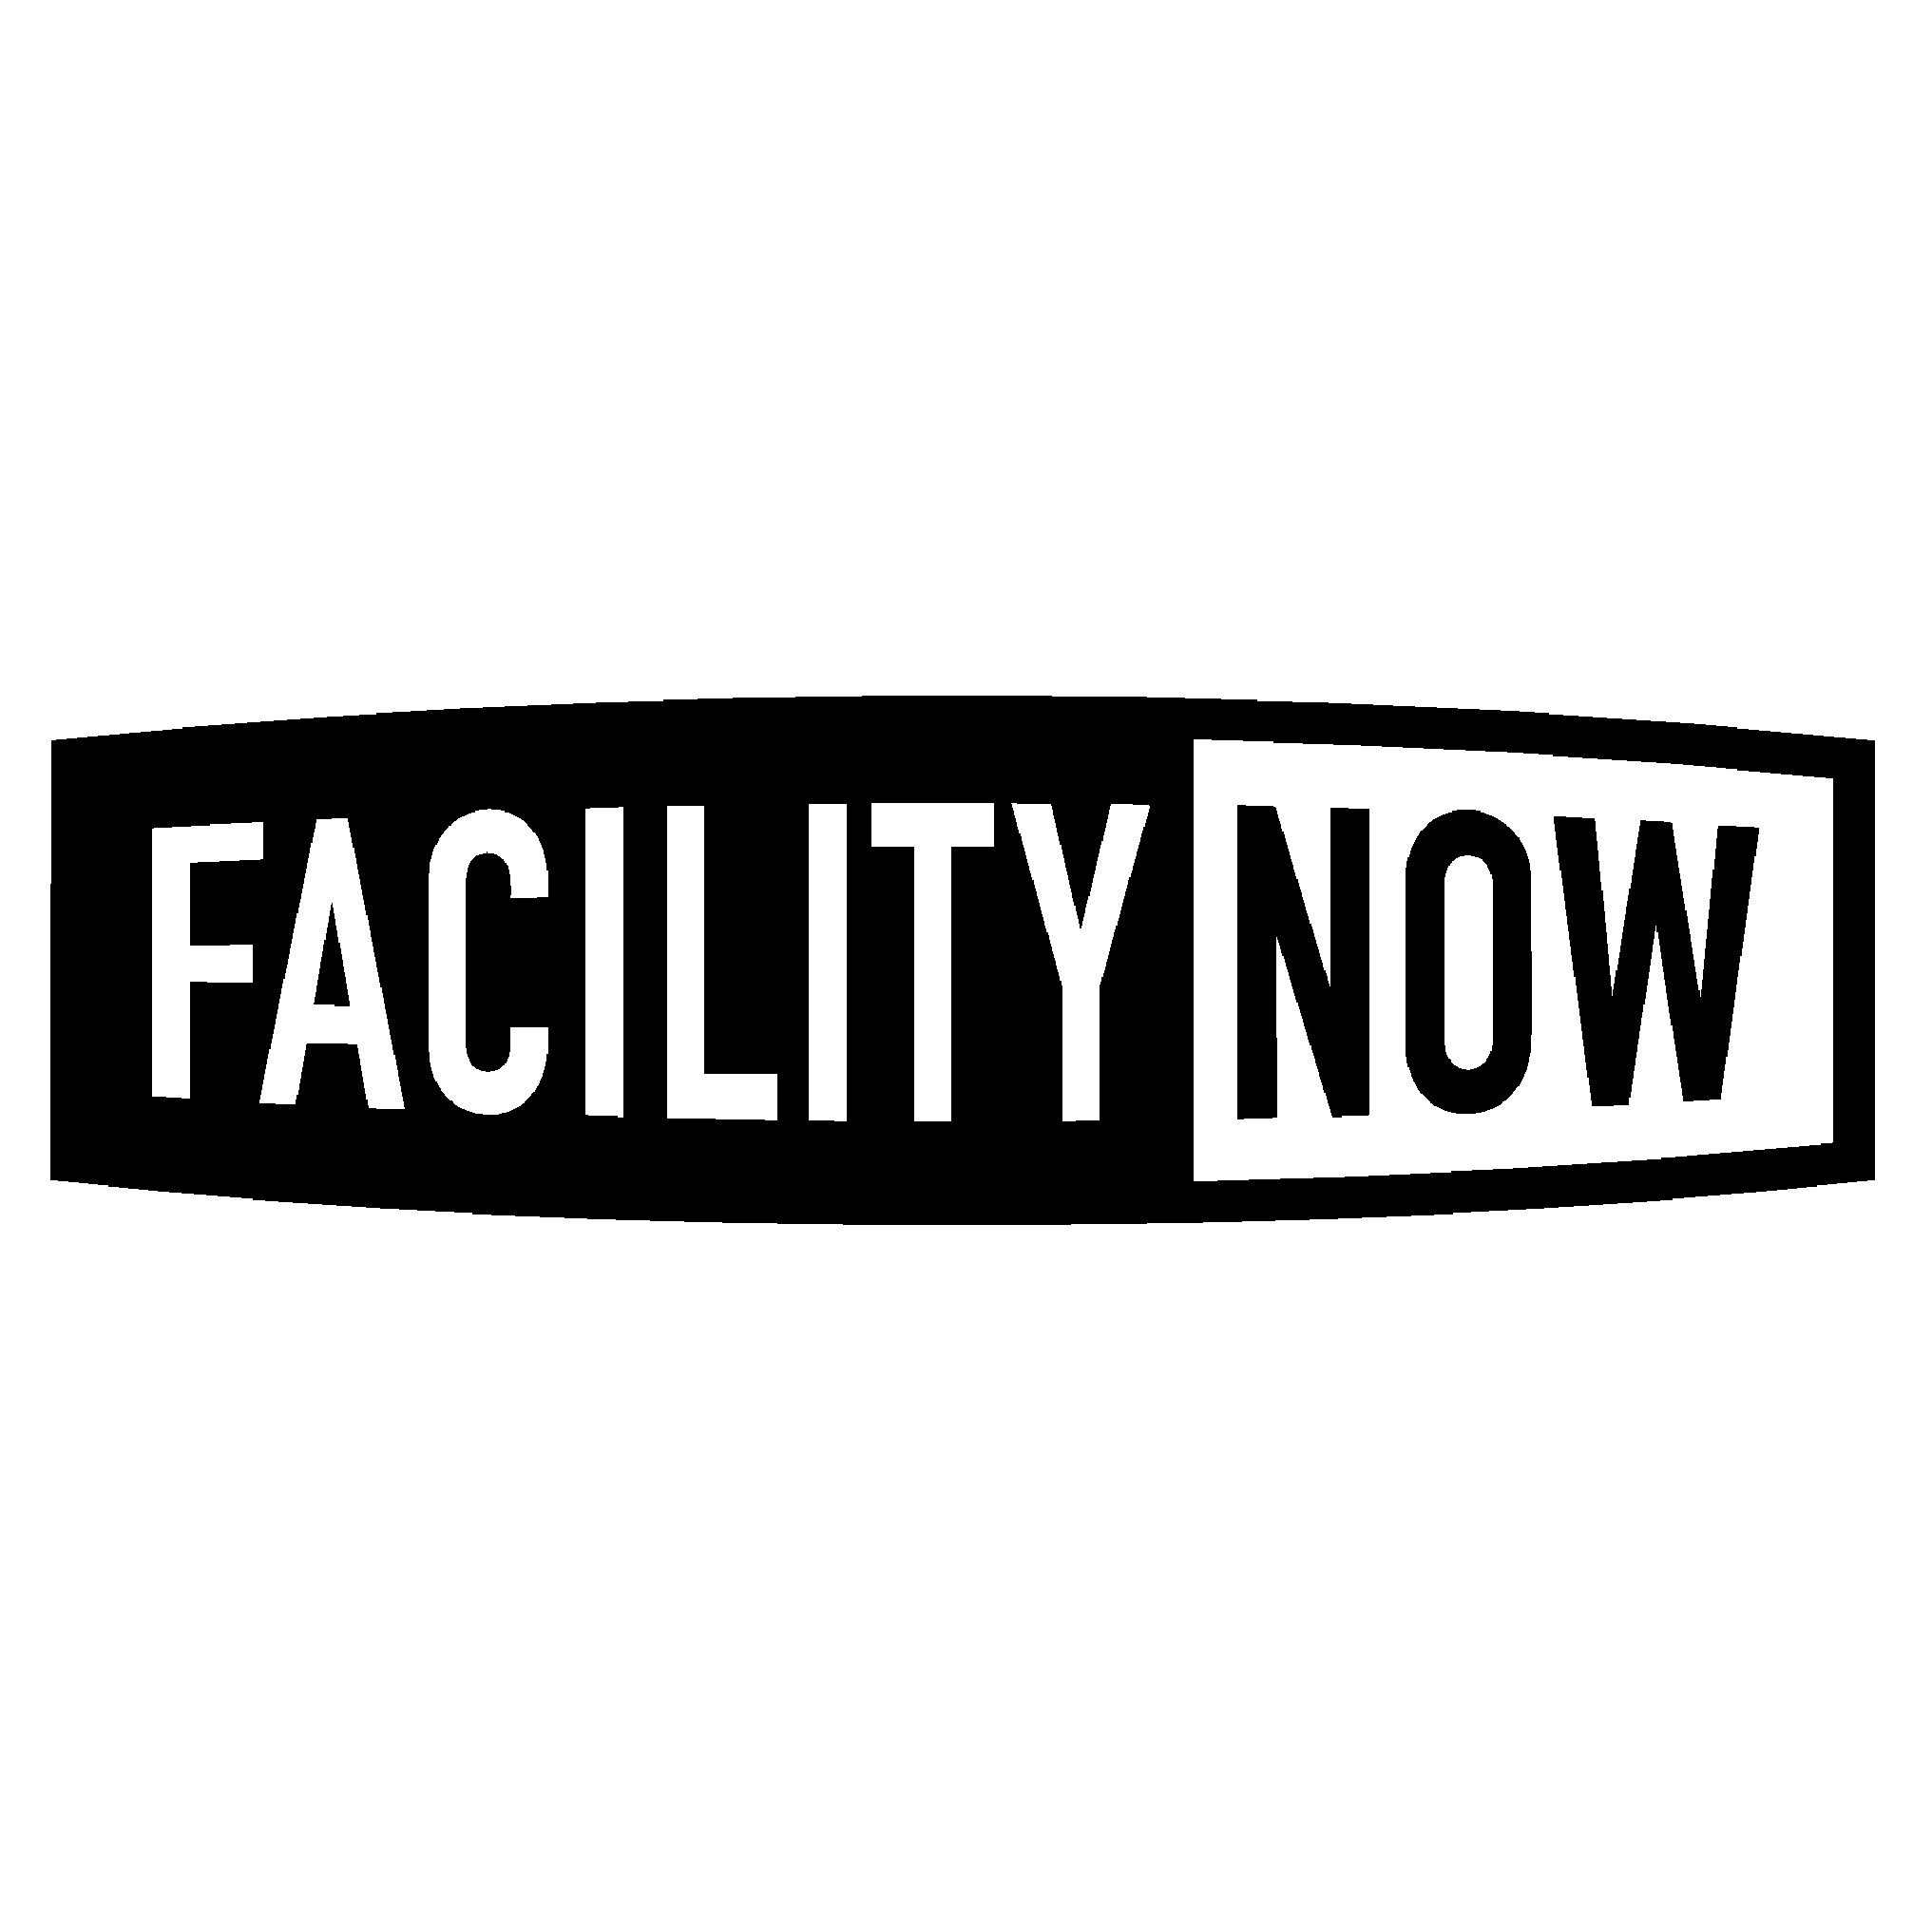 FacilityNow final.jpg